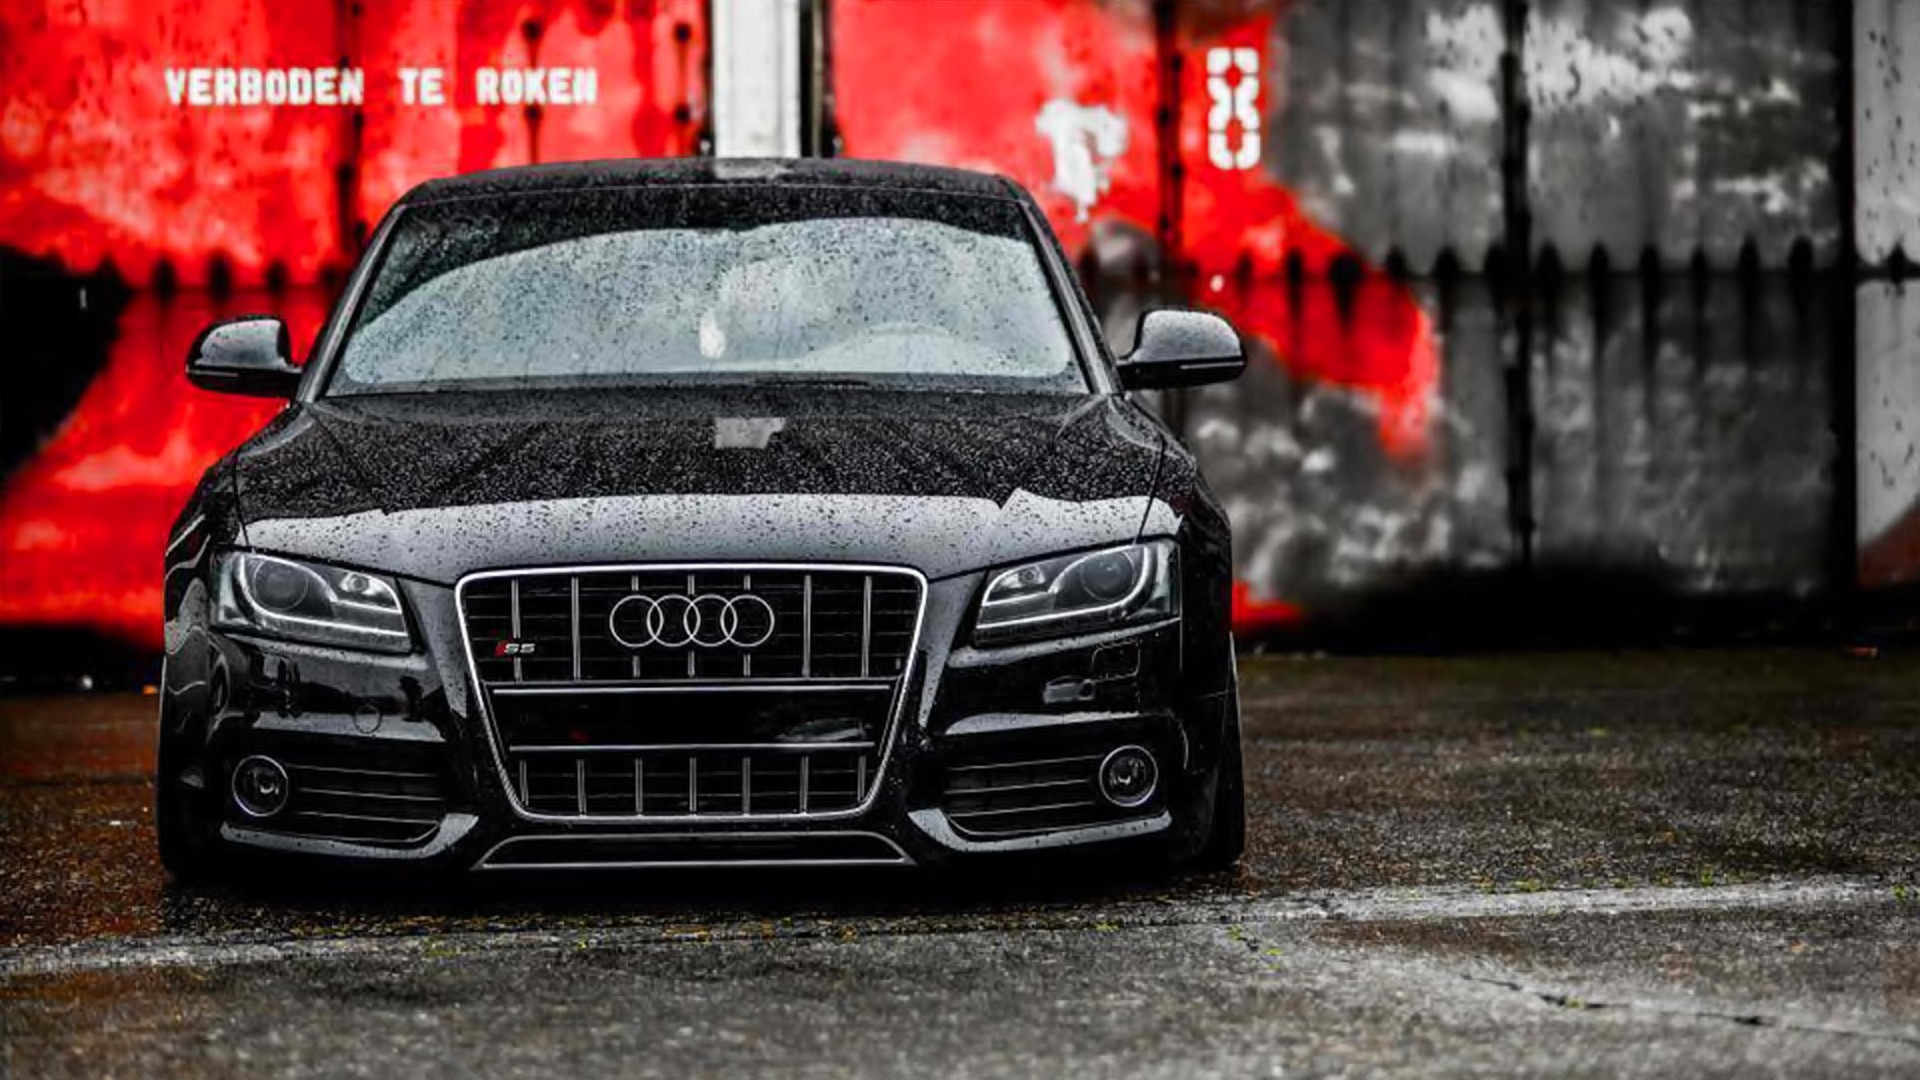 43 Audi Wallpapers Backgrounds in HD For Free Download Audi Wallpaper 11